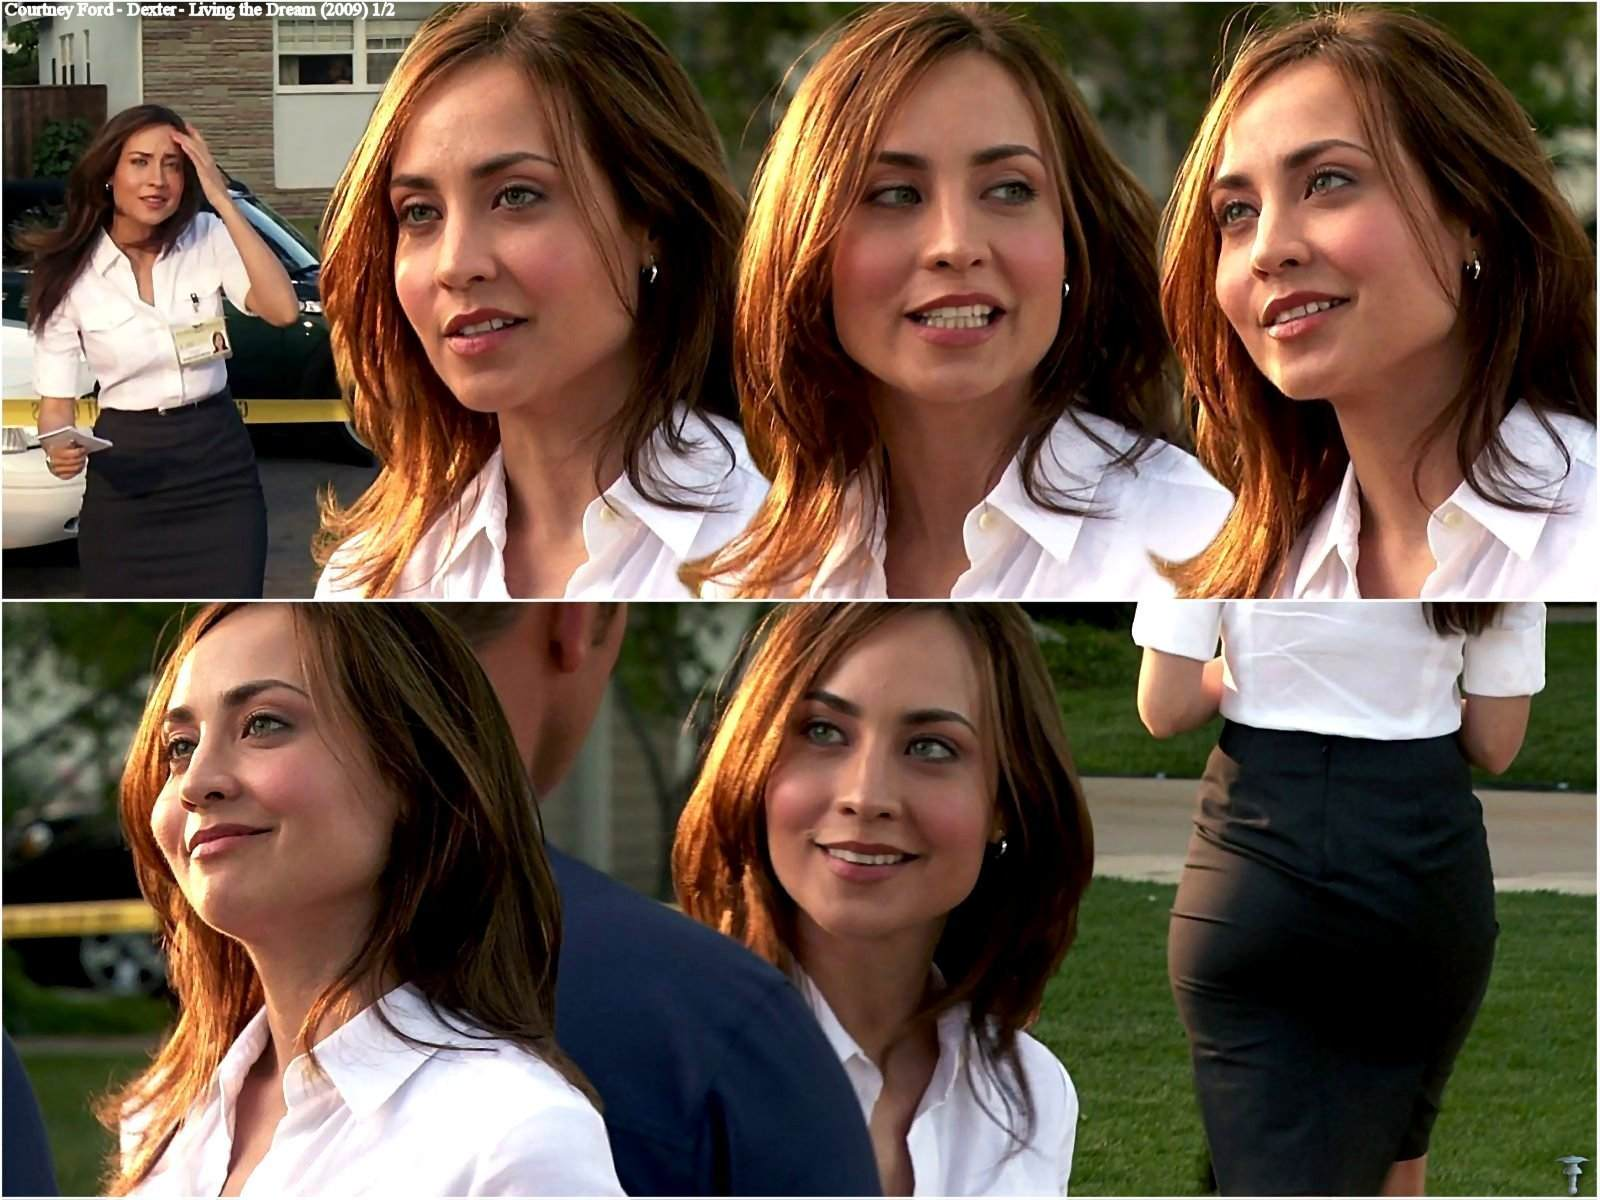 Naked Courtney Ford In Dexter Ancensored